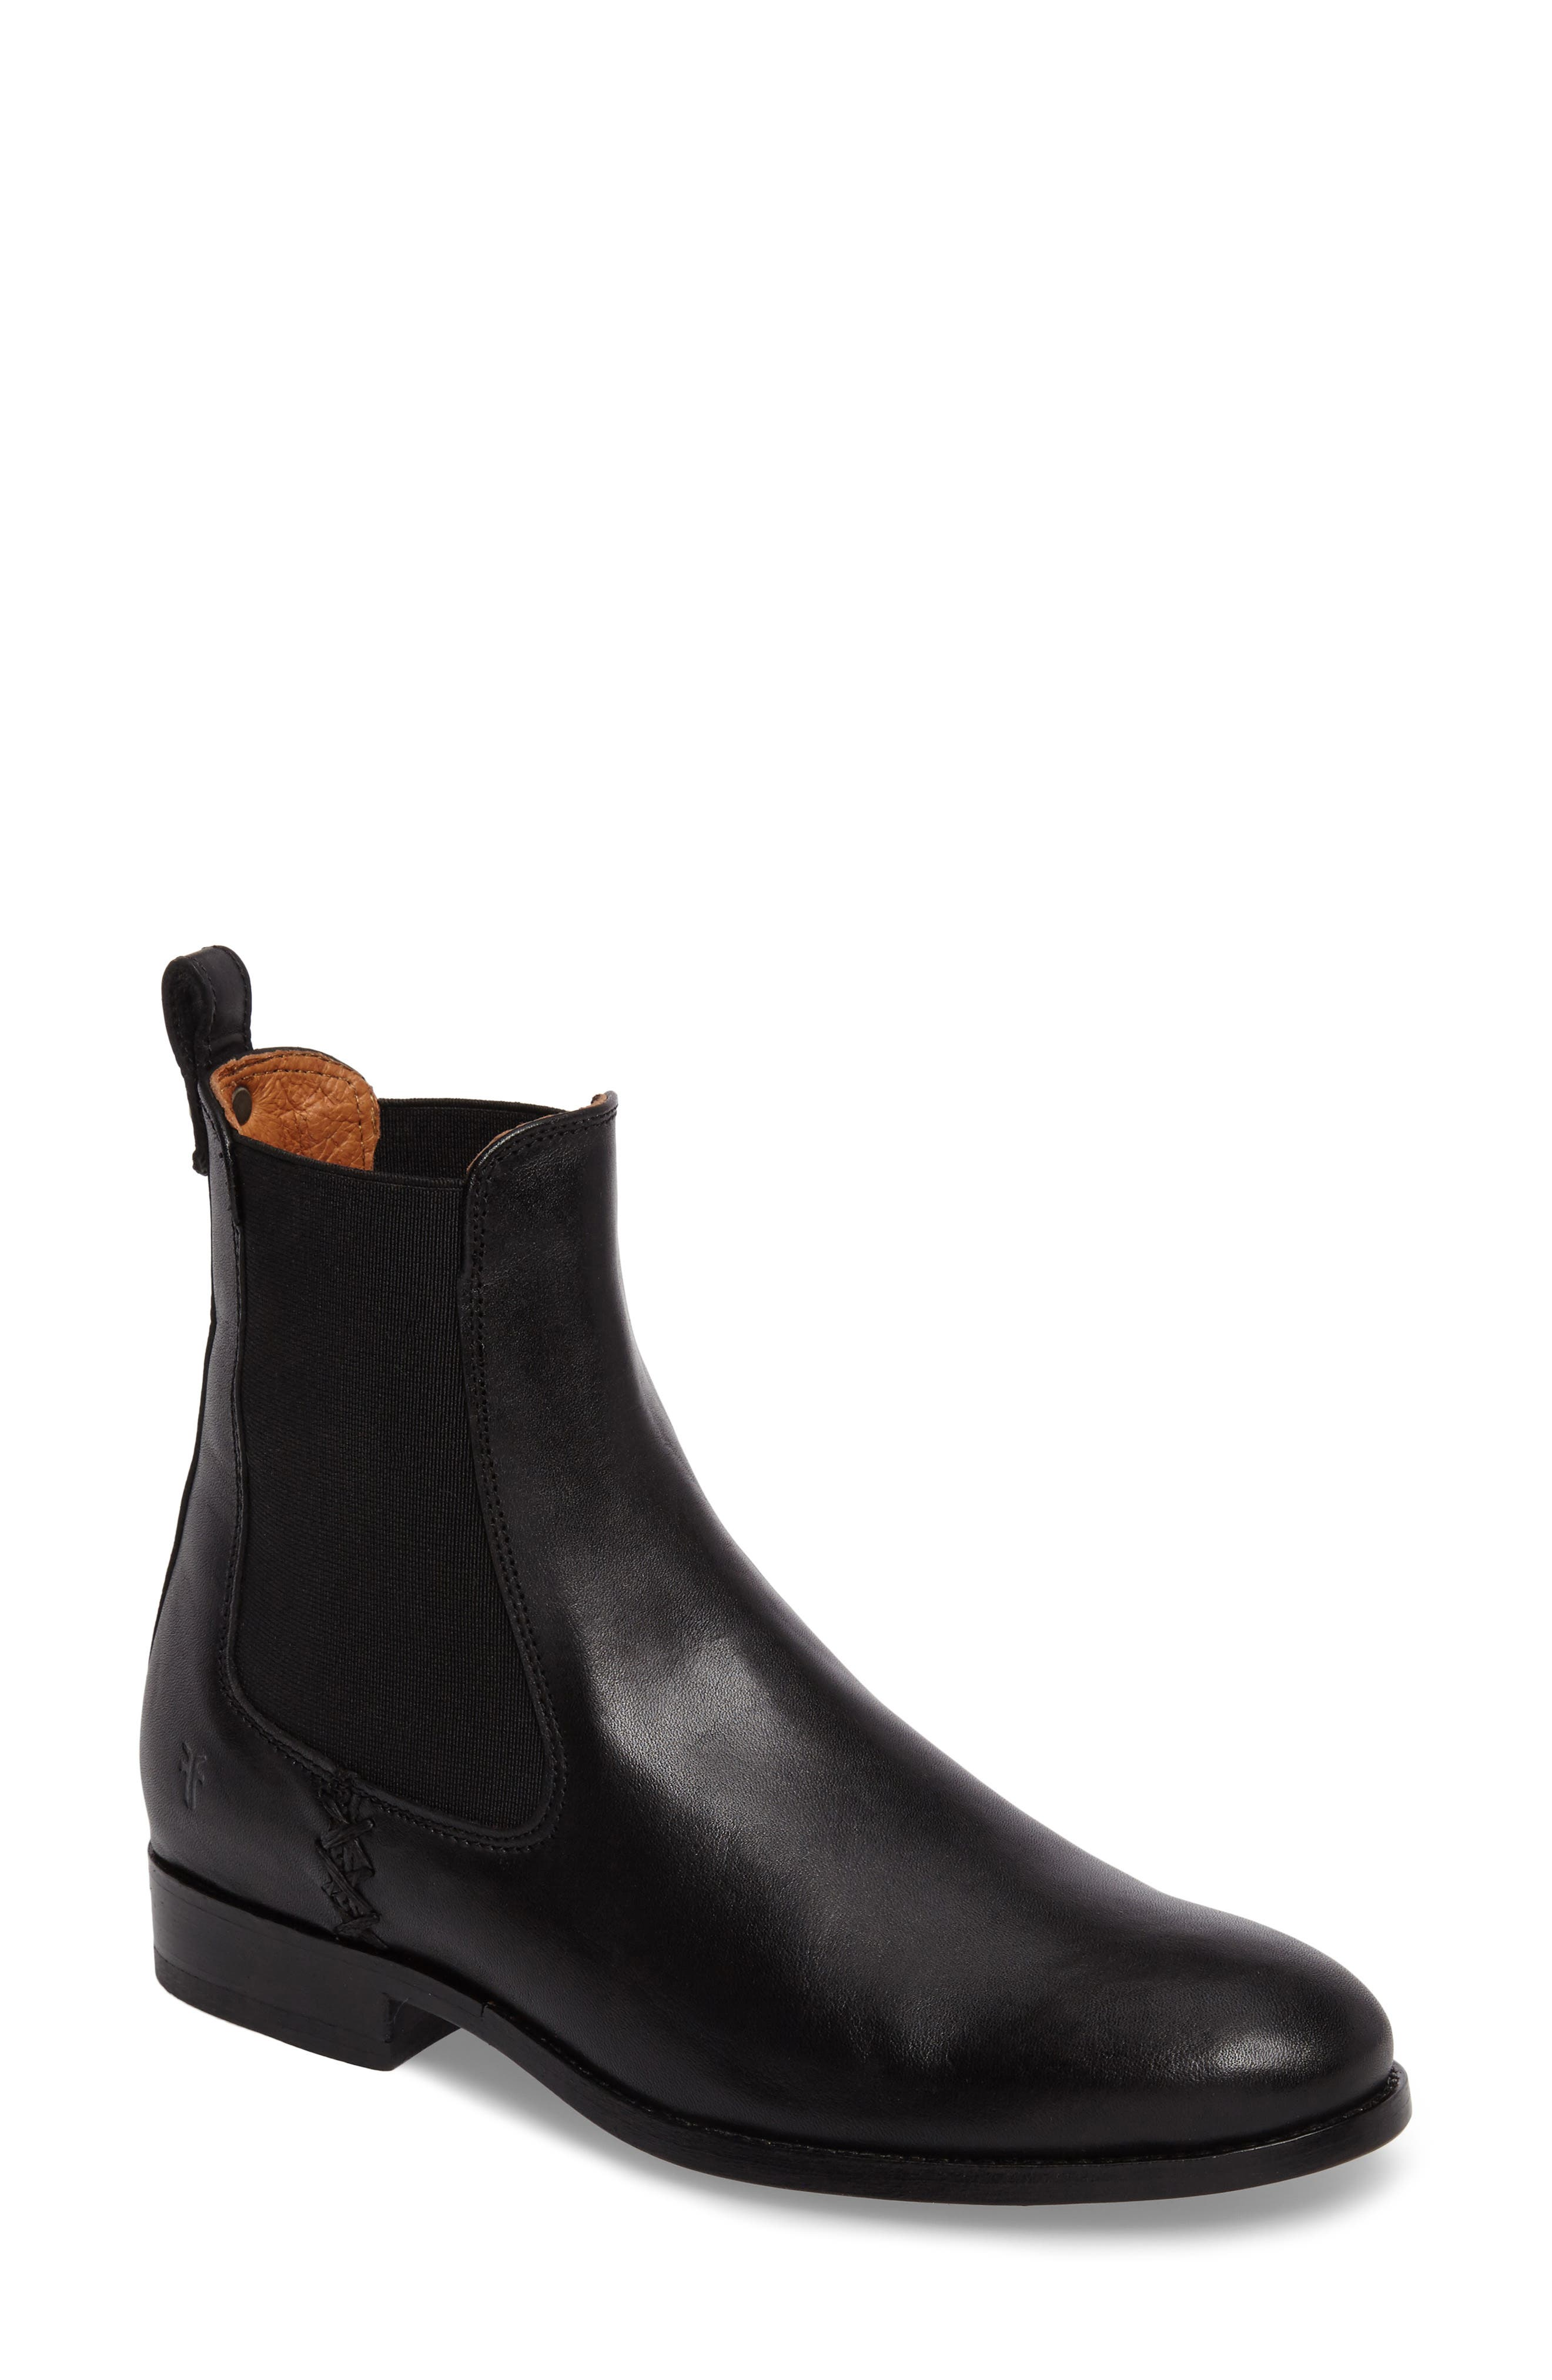 Melissa Chelsea Boot,                         Main,                         color, 001